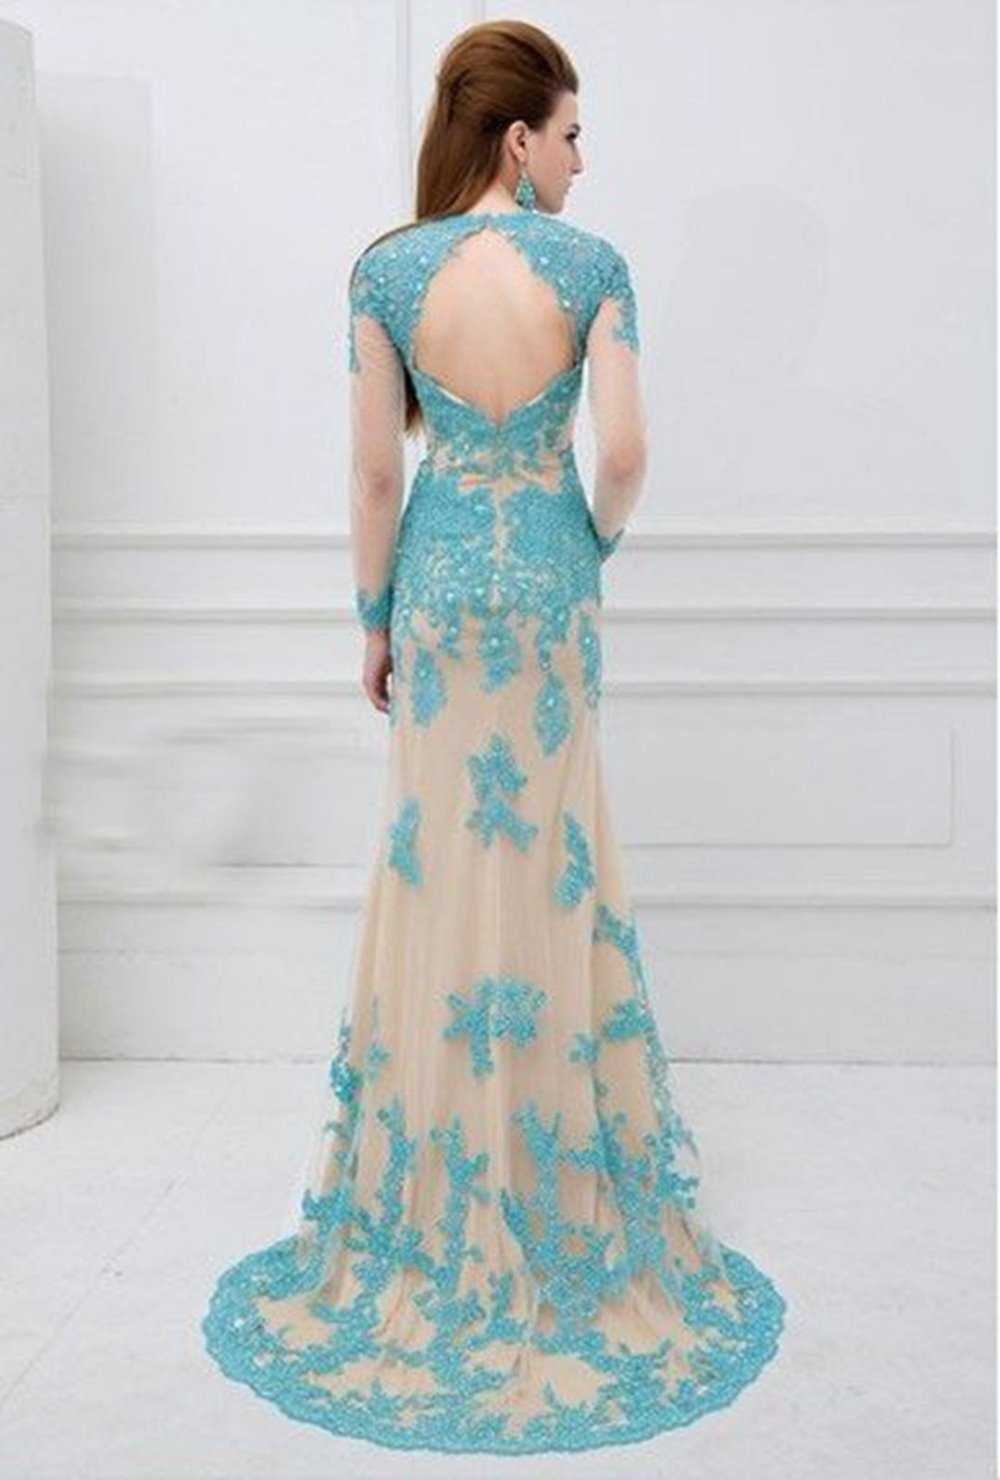 turquoise lace long sleeves pageant prom bridal party gown wedding dress in evening dresses from weddings events on aliexpress com alibaba group